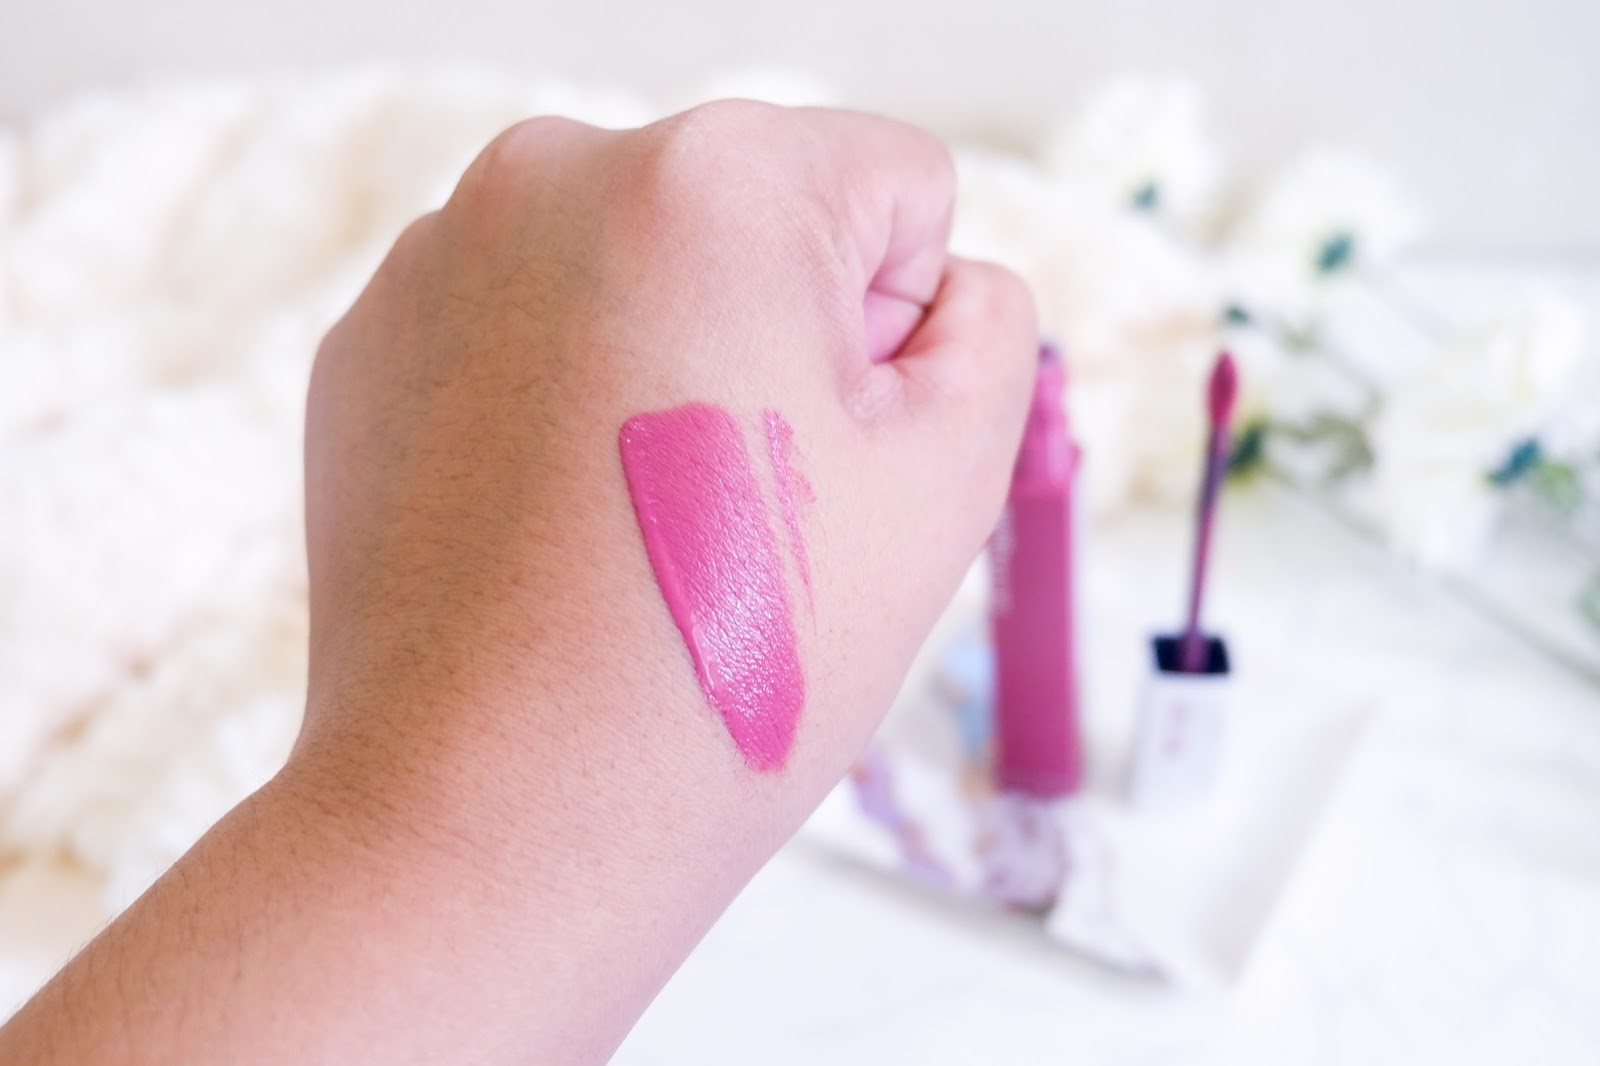 MOST LONG-WEARING LIQUID LIPSTICK: MAYBELLINE SUPERSTAY MATTE INK LIQUID LIPSTICK (LOVER) REVIEW